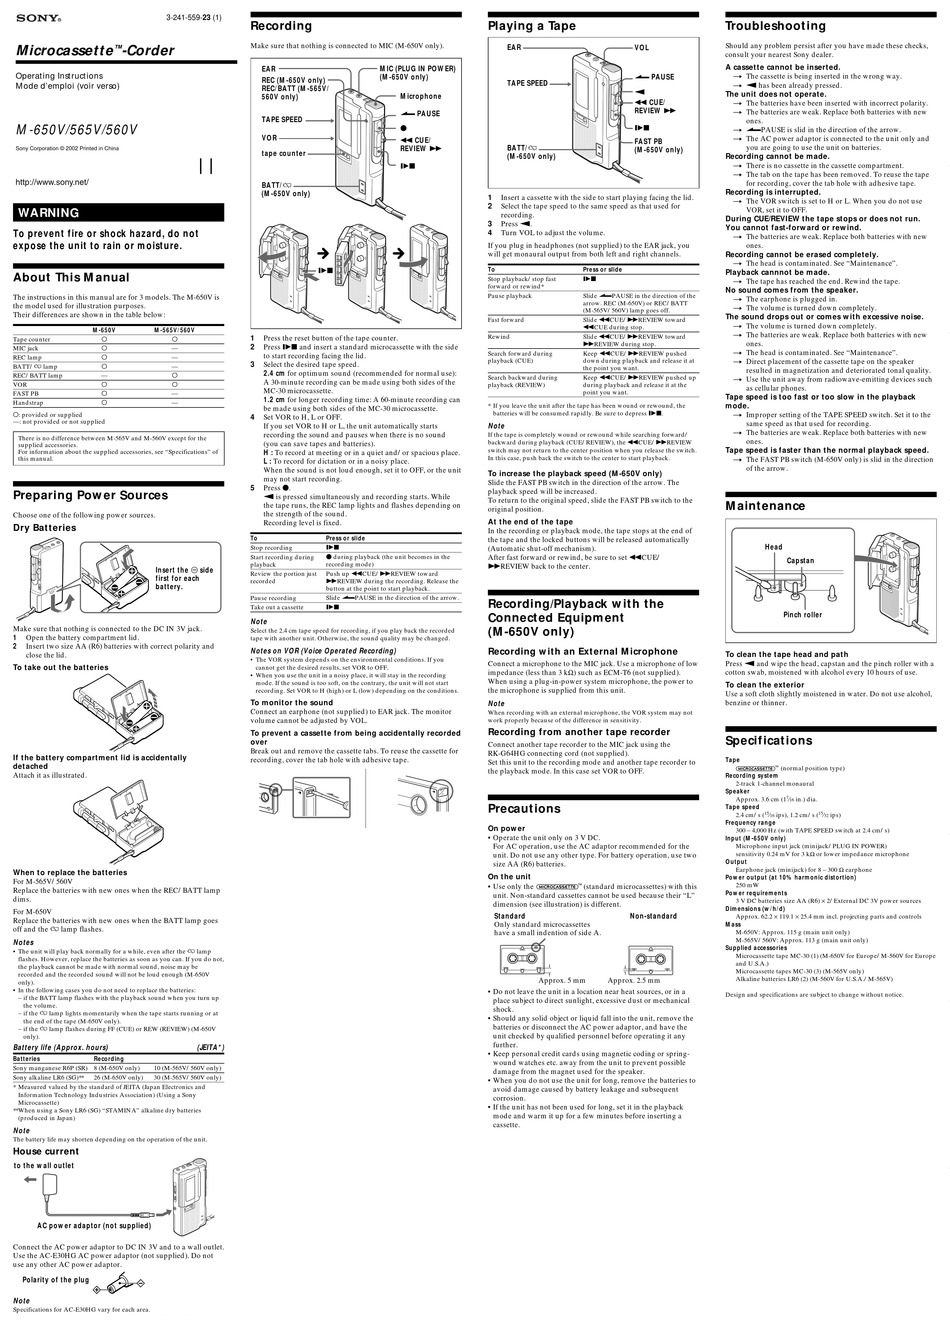 SONY M-565V OPERATING INSTRUCTIONS (PRIMARY MANUAL